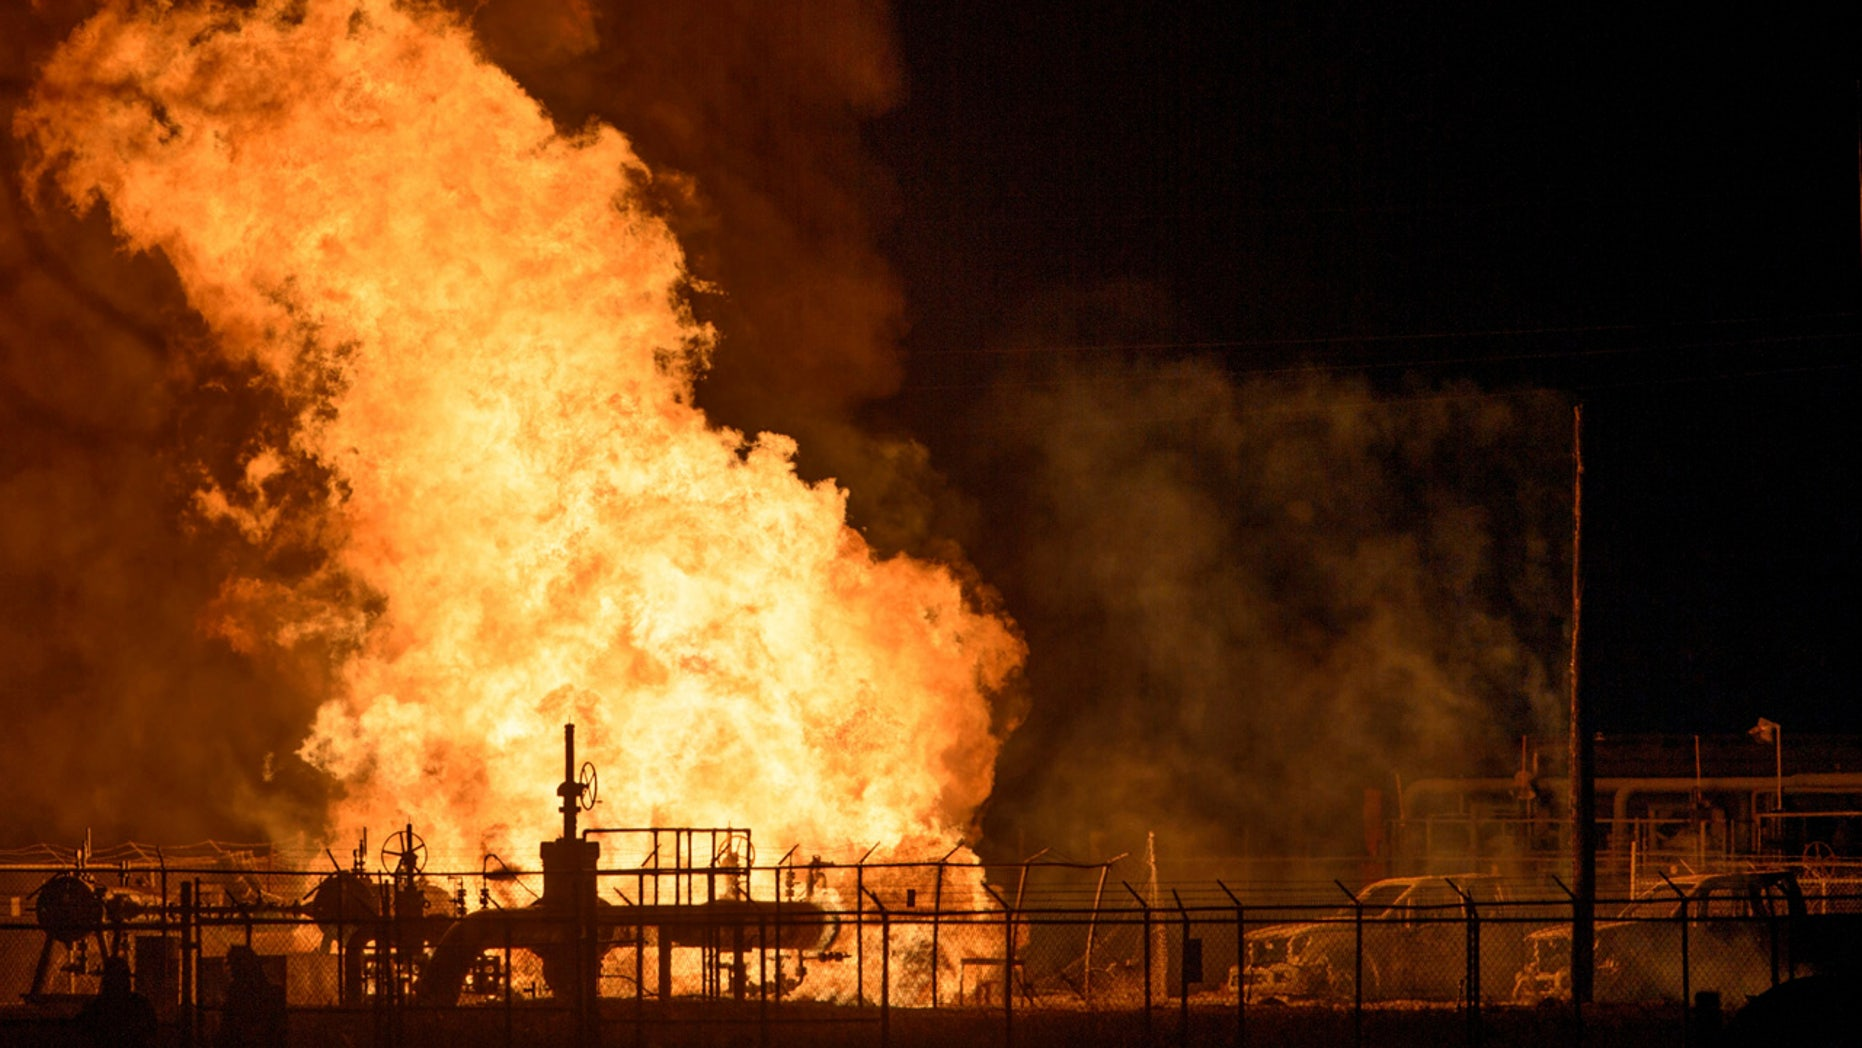 Vehicles and a power pole smoke next to a fire at the Phillips 66 pipeline in Paradis, La. Thursday, Feb. 9, 2017.